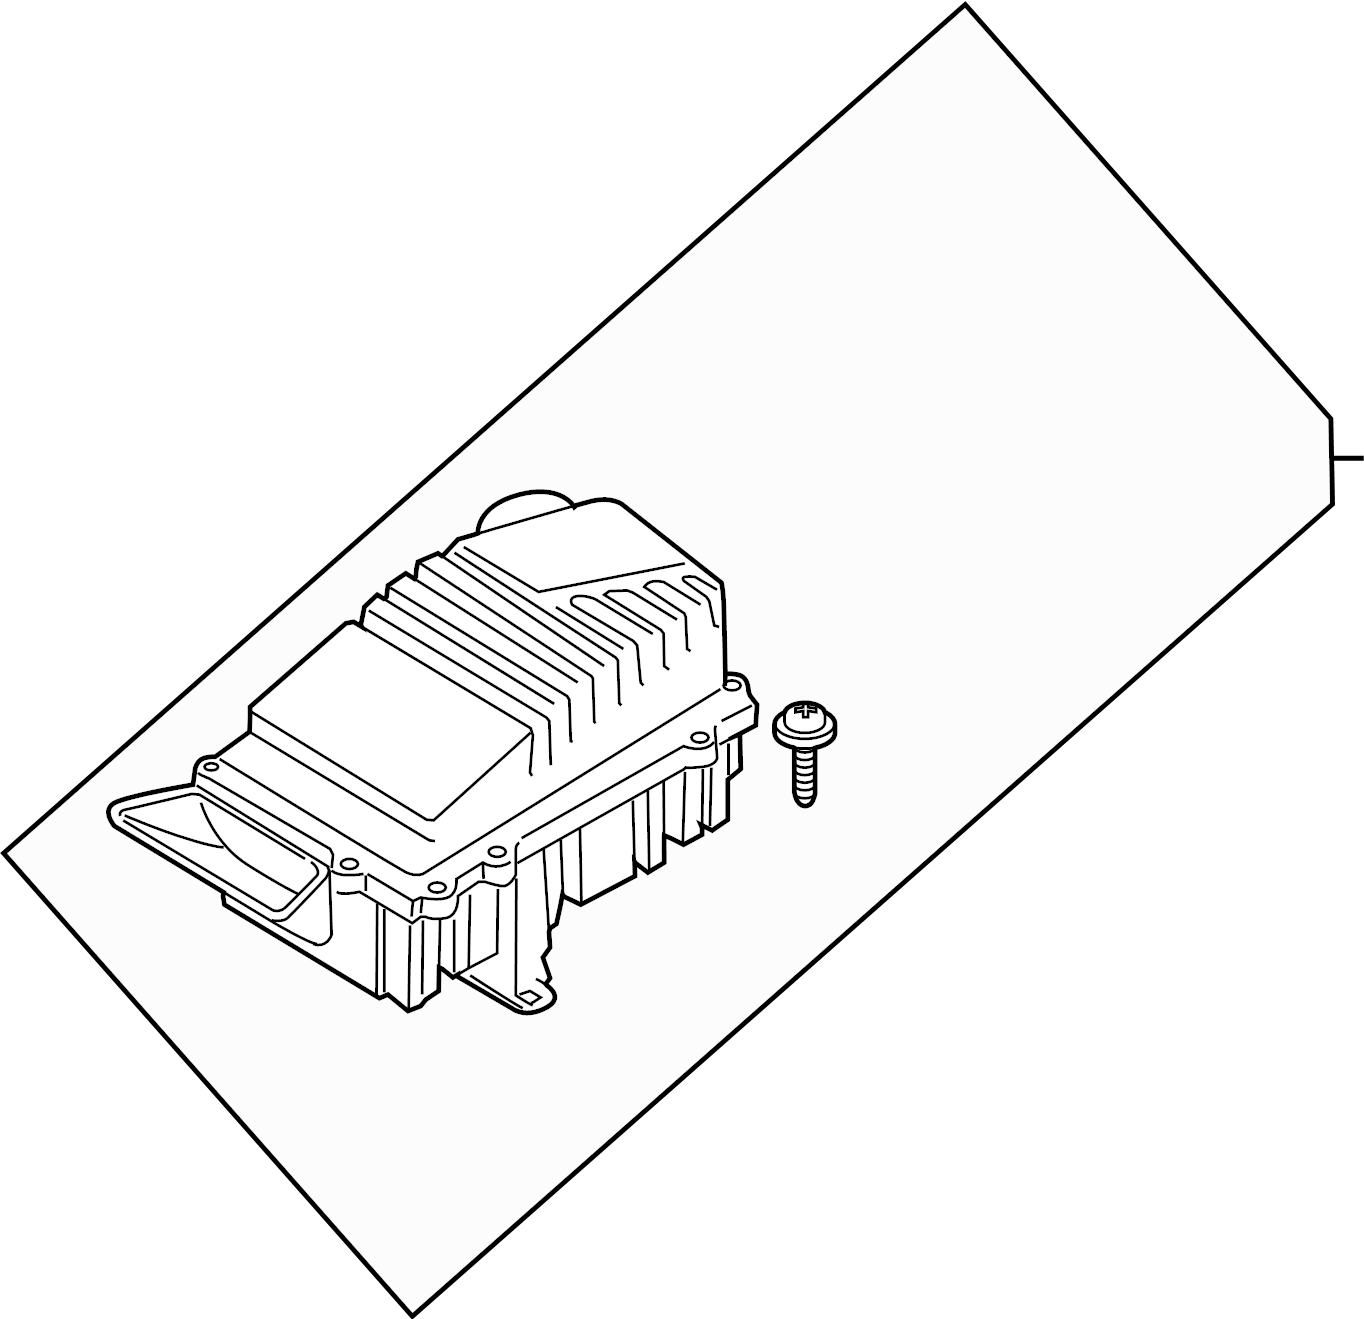 volkswagen golf air cleaner for vehicle use in cold